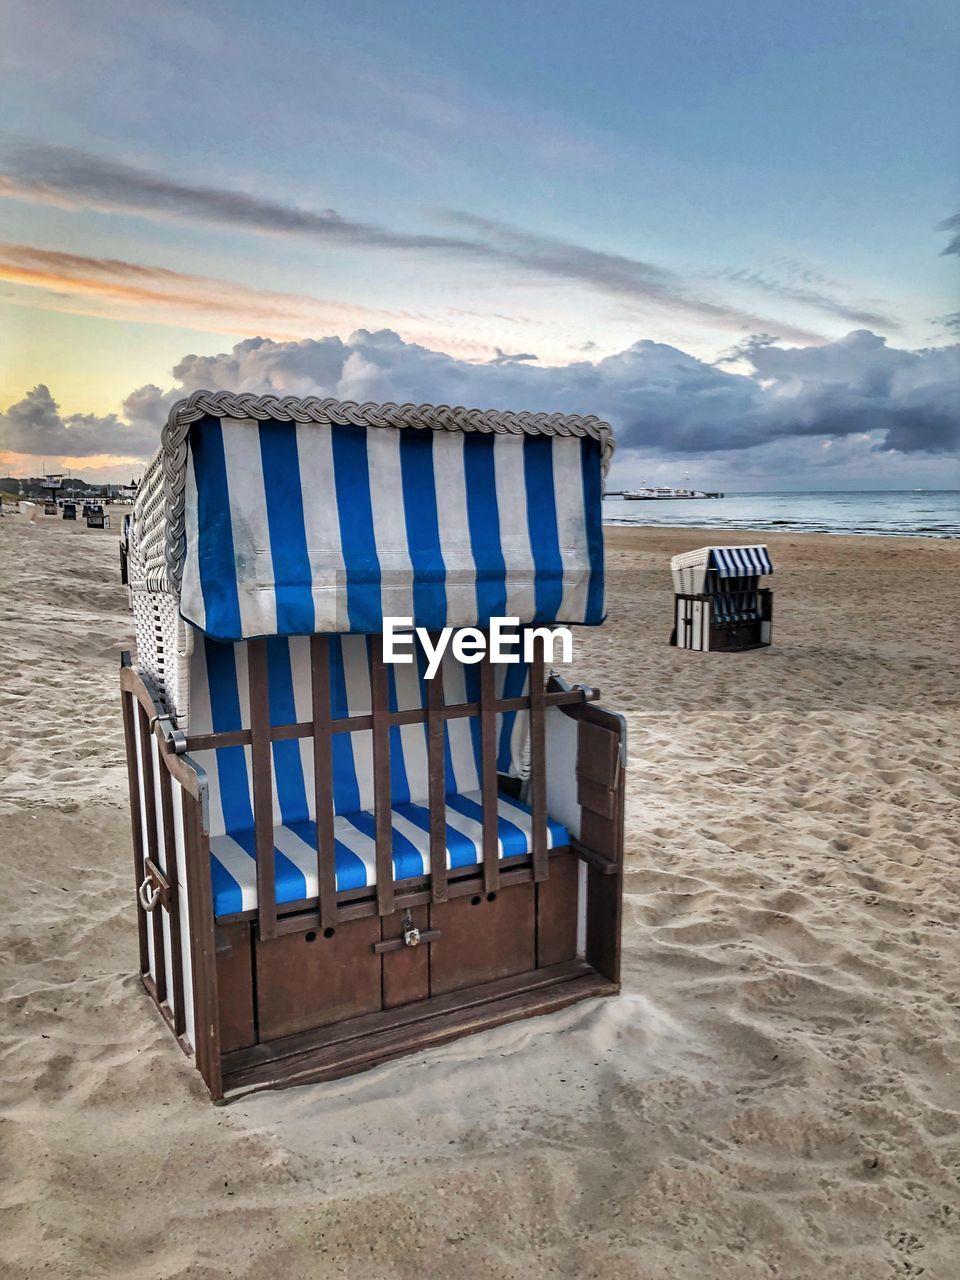 land, sky, beach, sea, scenics - nature, water, tranquil scene, cloud - sky, sand, tranquility, beauty in nature, chair, nature, absence, no people, hooded beach chair, non-urban scene, holiday, vacations, outdoors, horizon over water